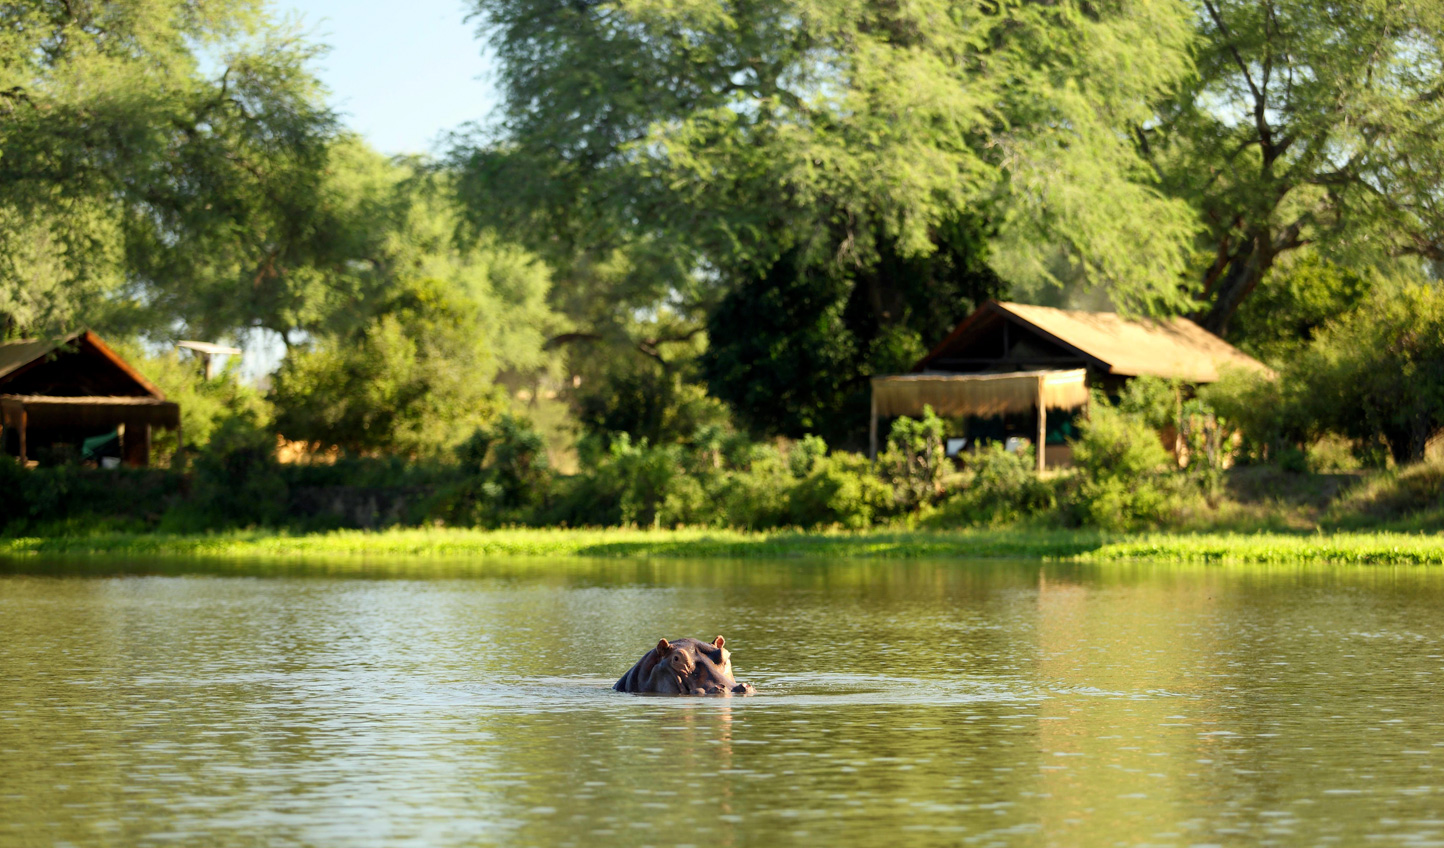 Spot hippos spying on you from the river